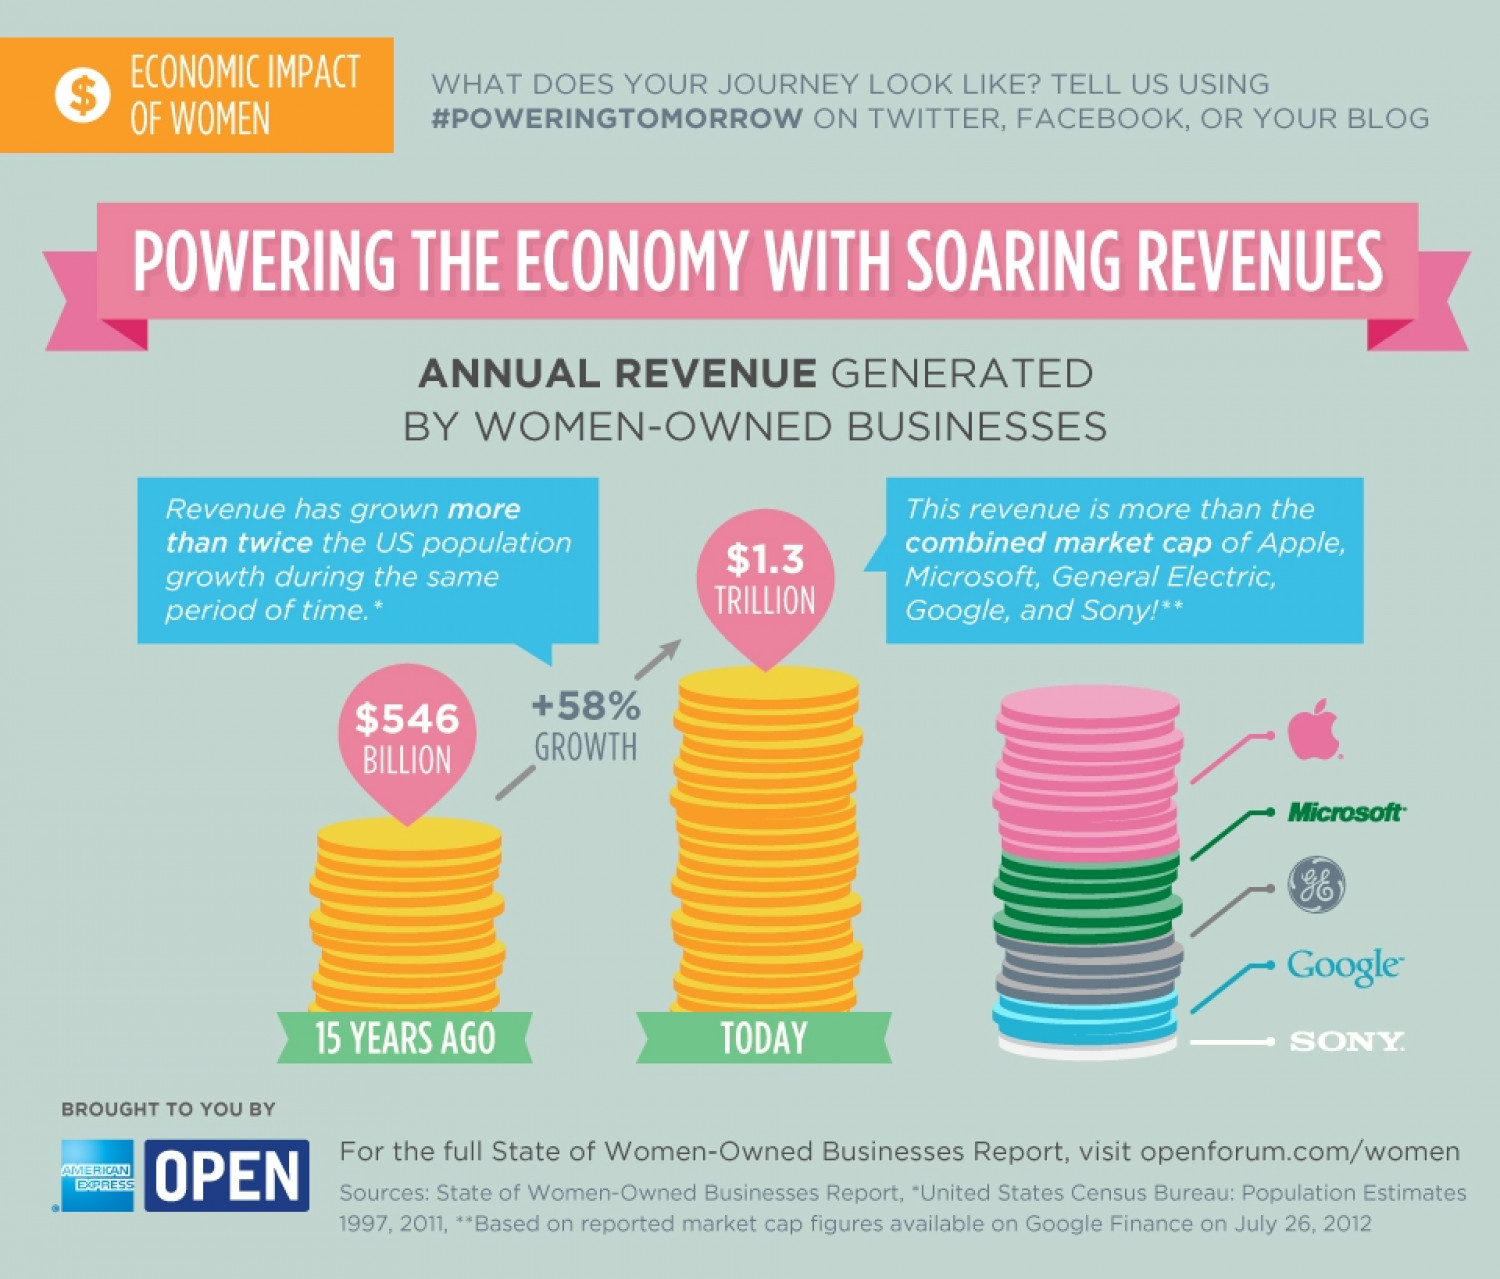 Powering the Economy with Soaring Revenues Infographic